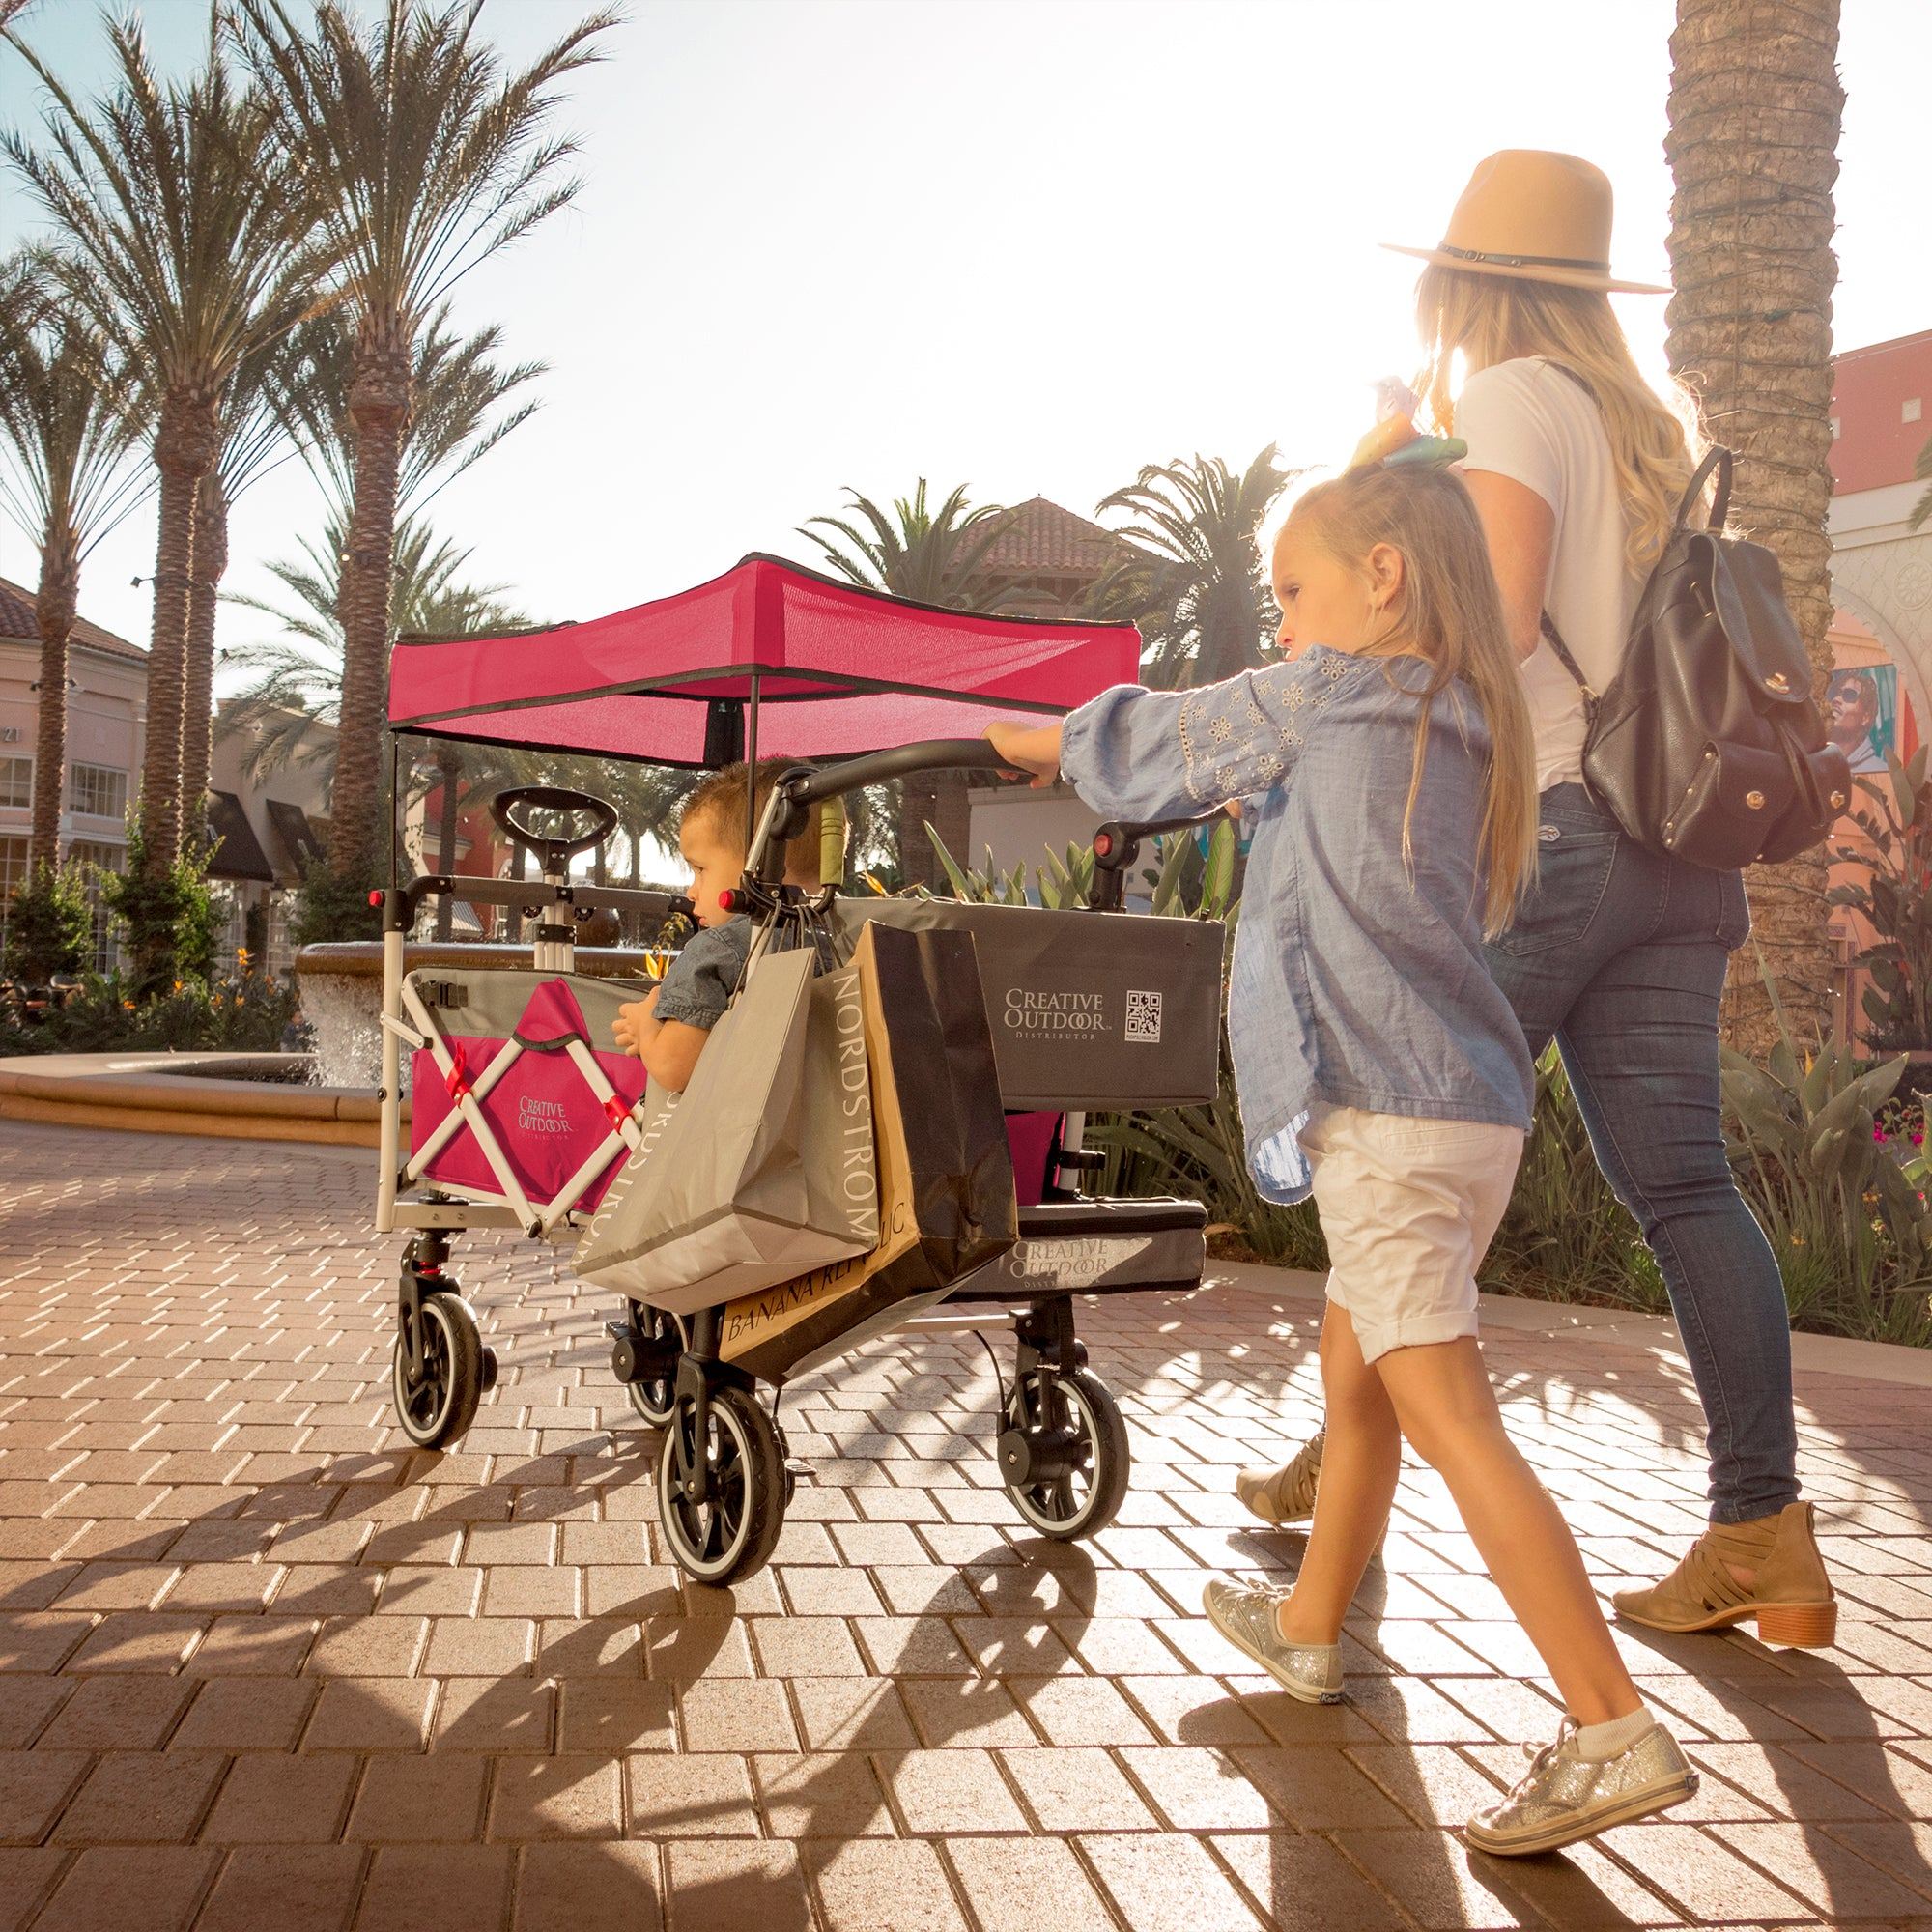 Push Pull TITANIUM SERIES PLUS Folding Wagon Stroller with Canopy | Pink